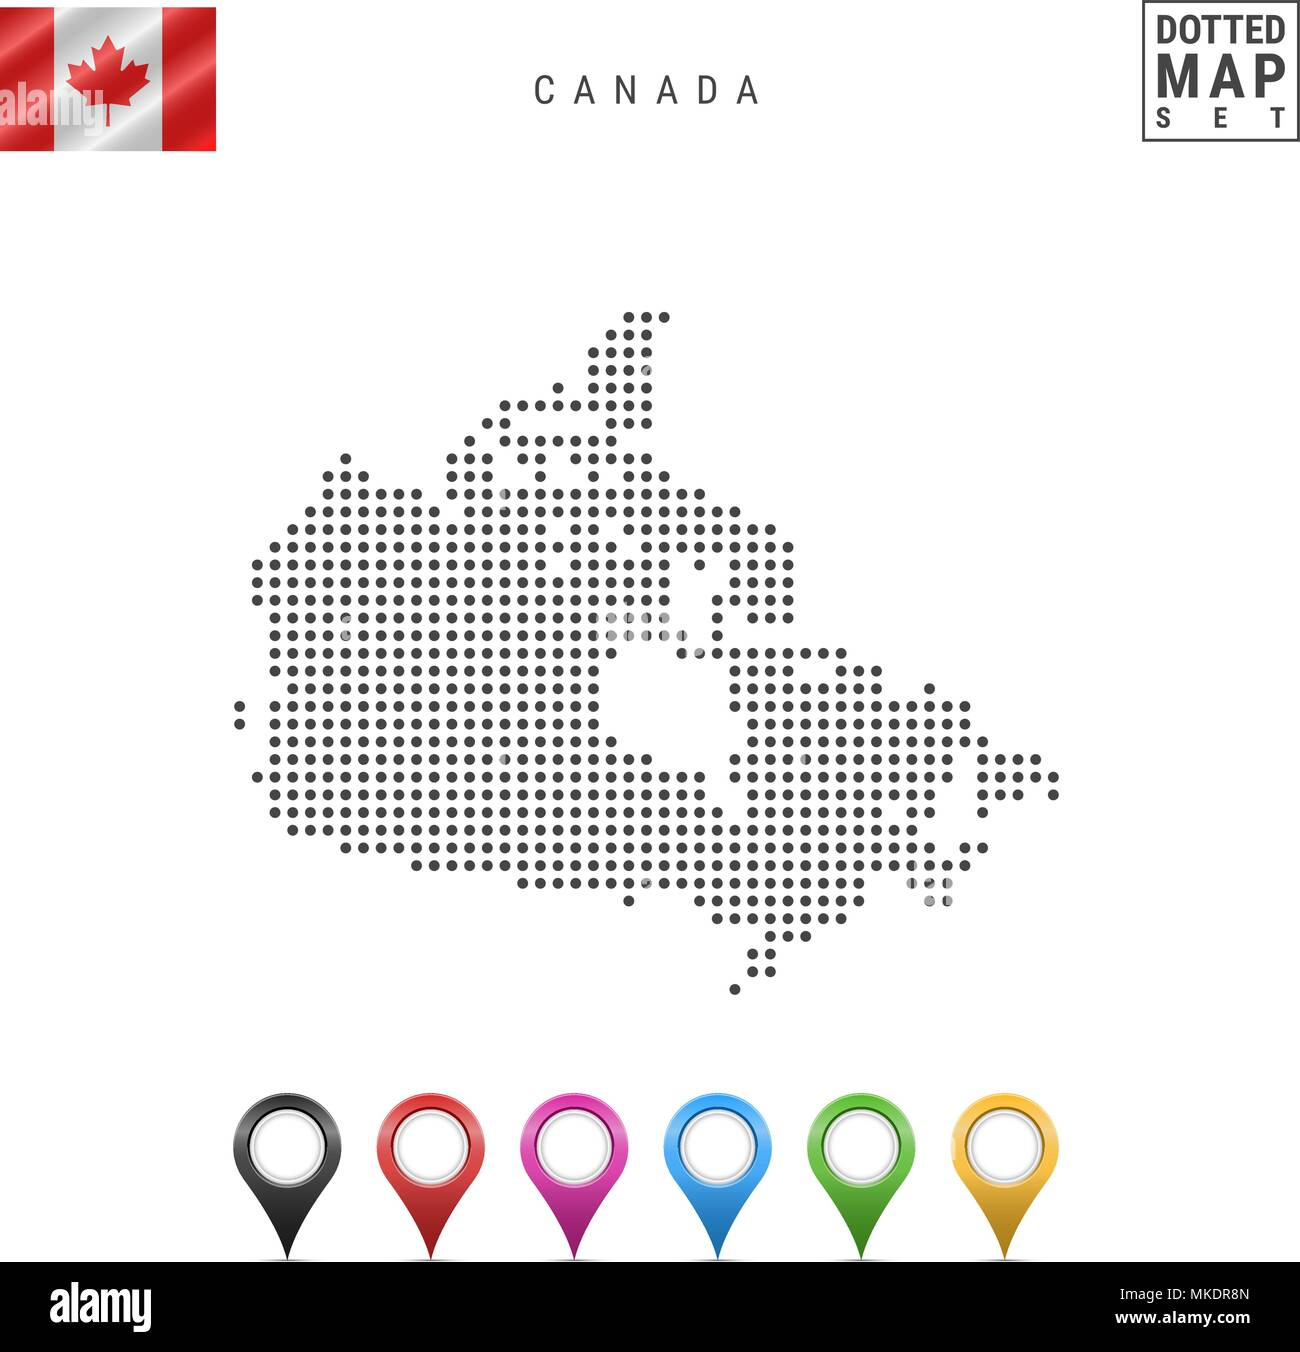 Simple Map Of Canada.Vector Dotted Map Of Canada Simple Silhouette Of Canada The